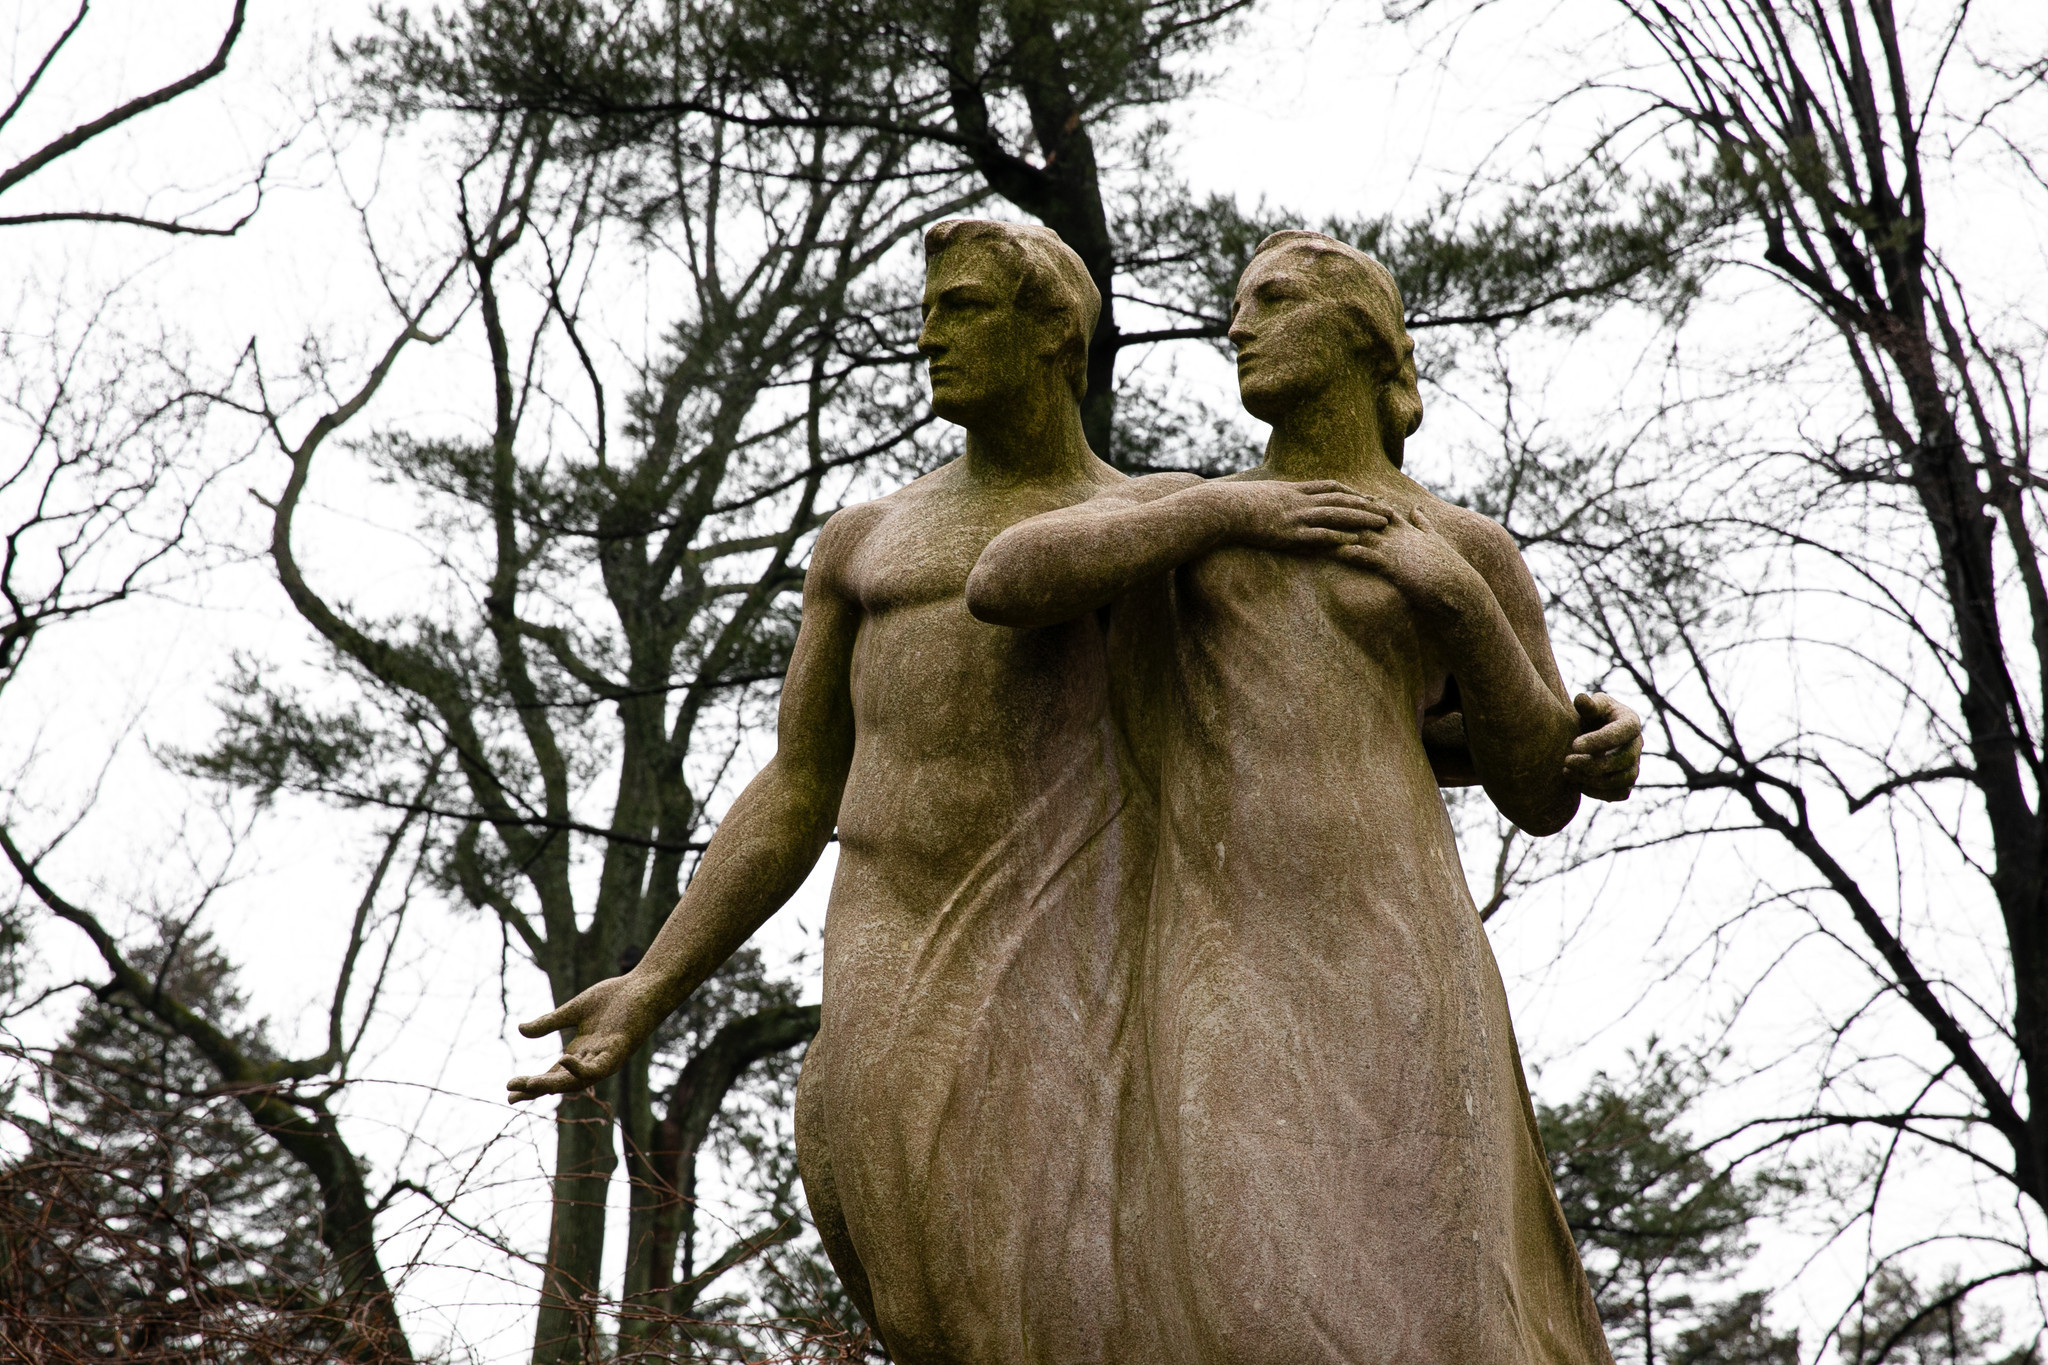 Everlasting love showcased on Woodlawn Cemetery's 'Stories of Love' trolley tour